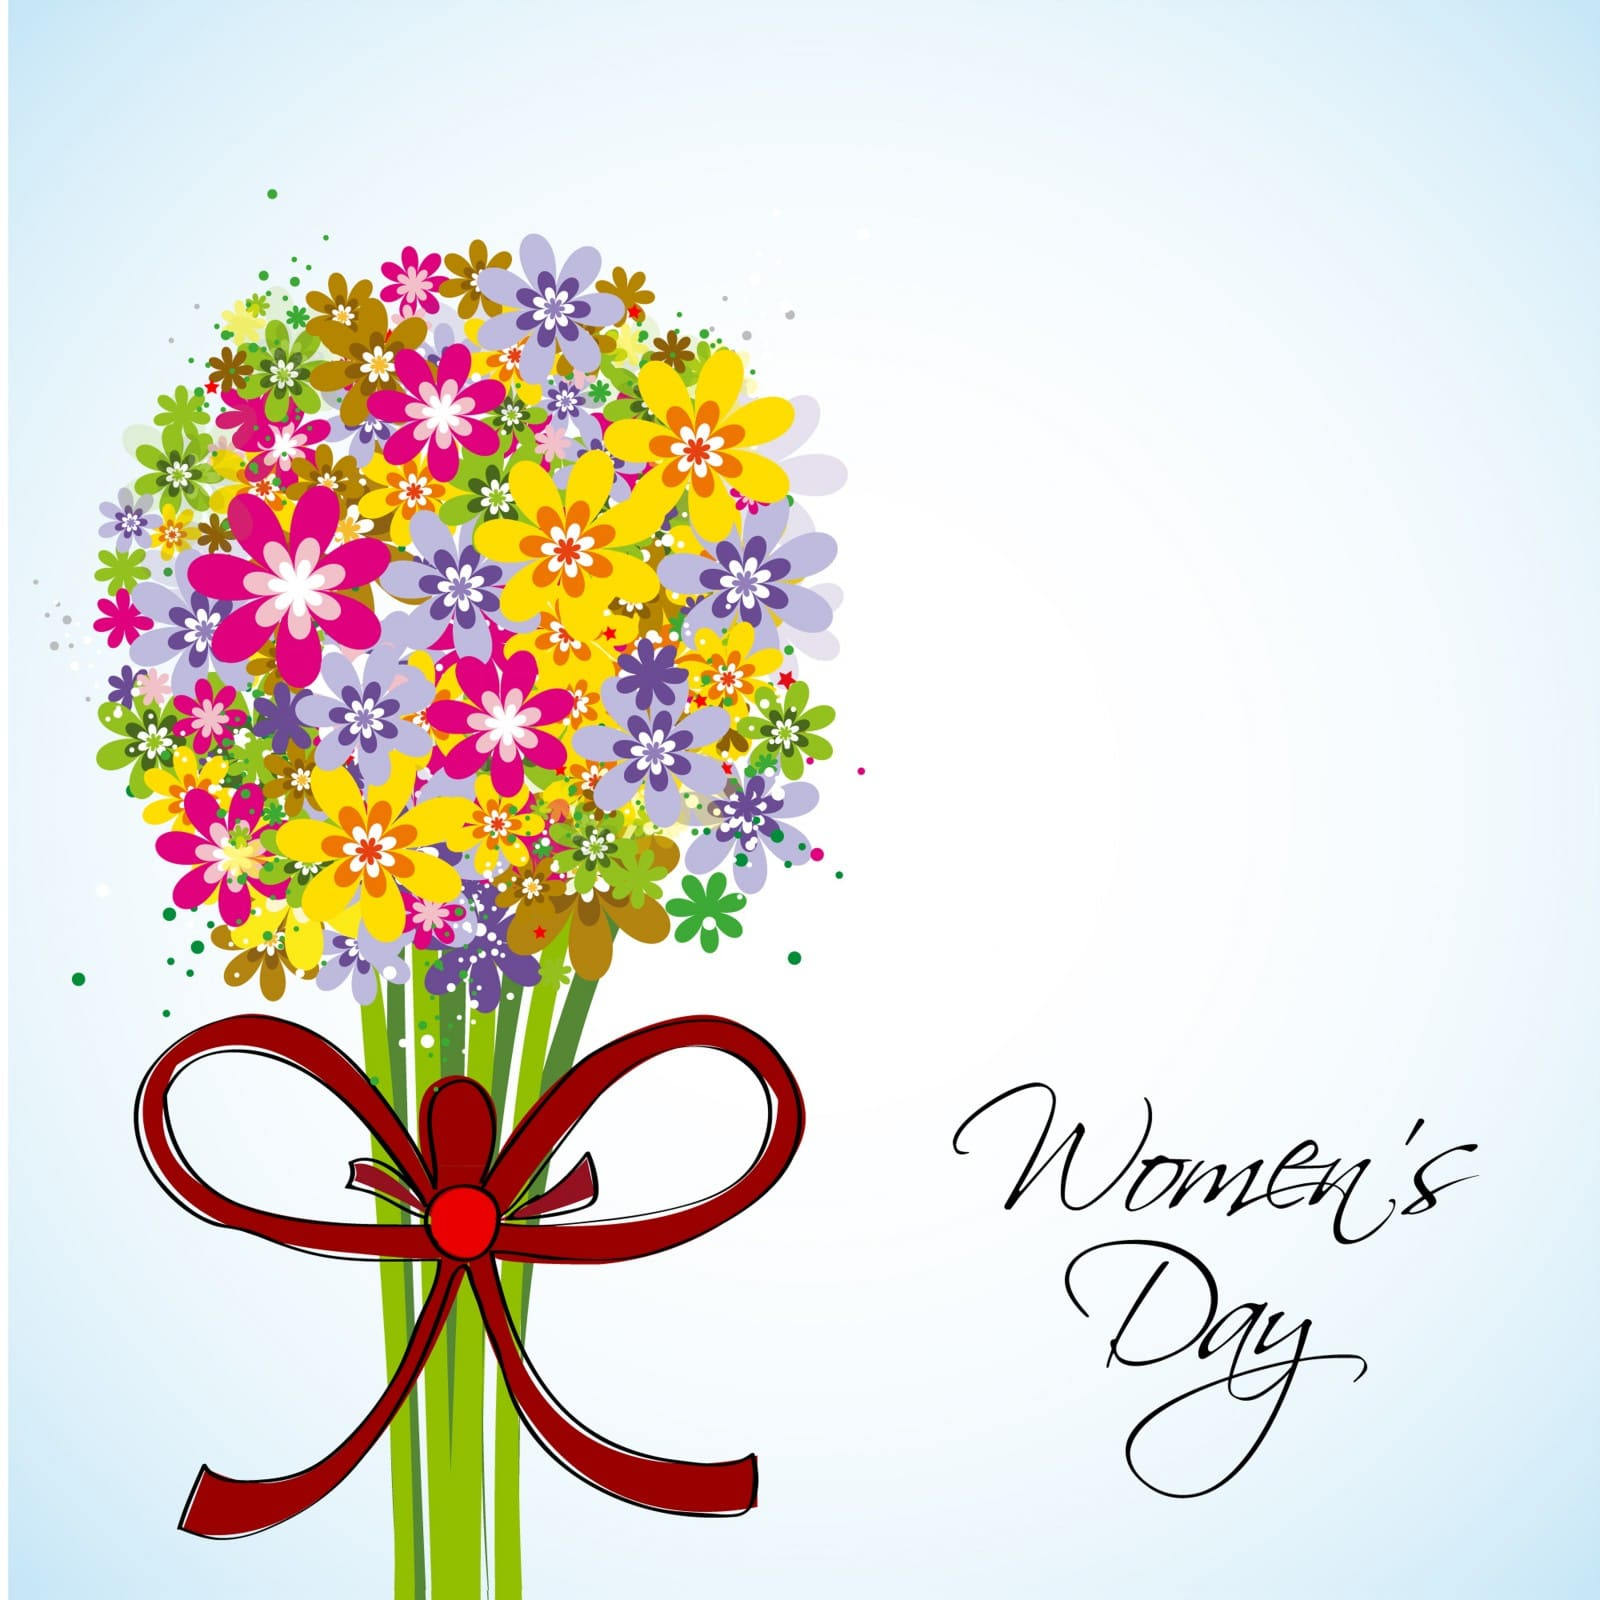 Women's Day Wallpaper, HD photos and Pics